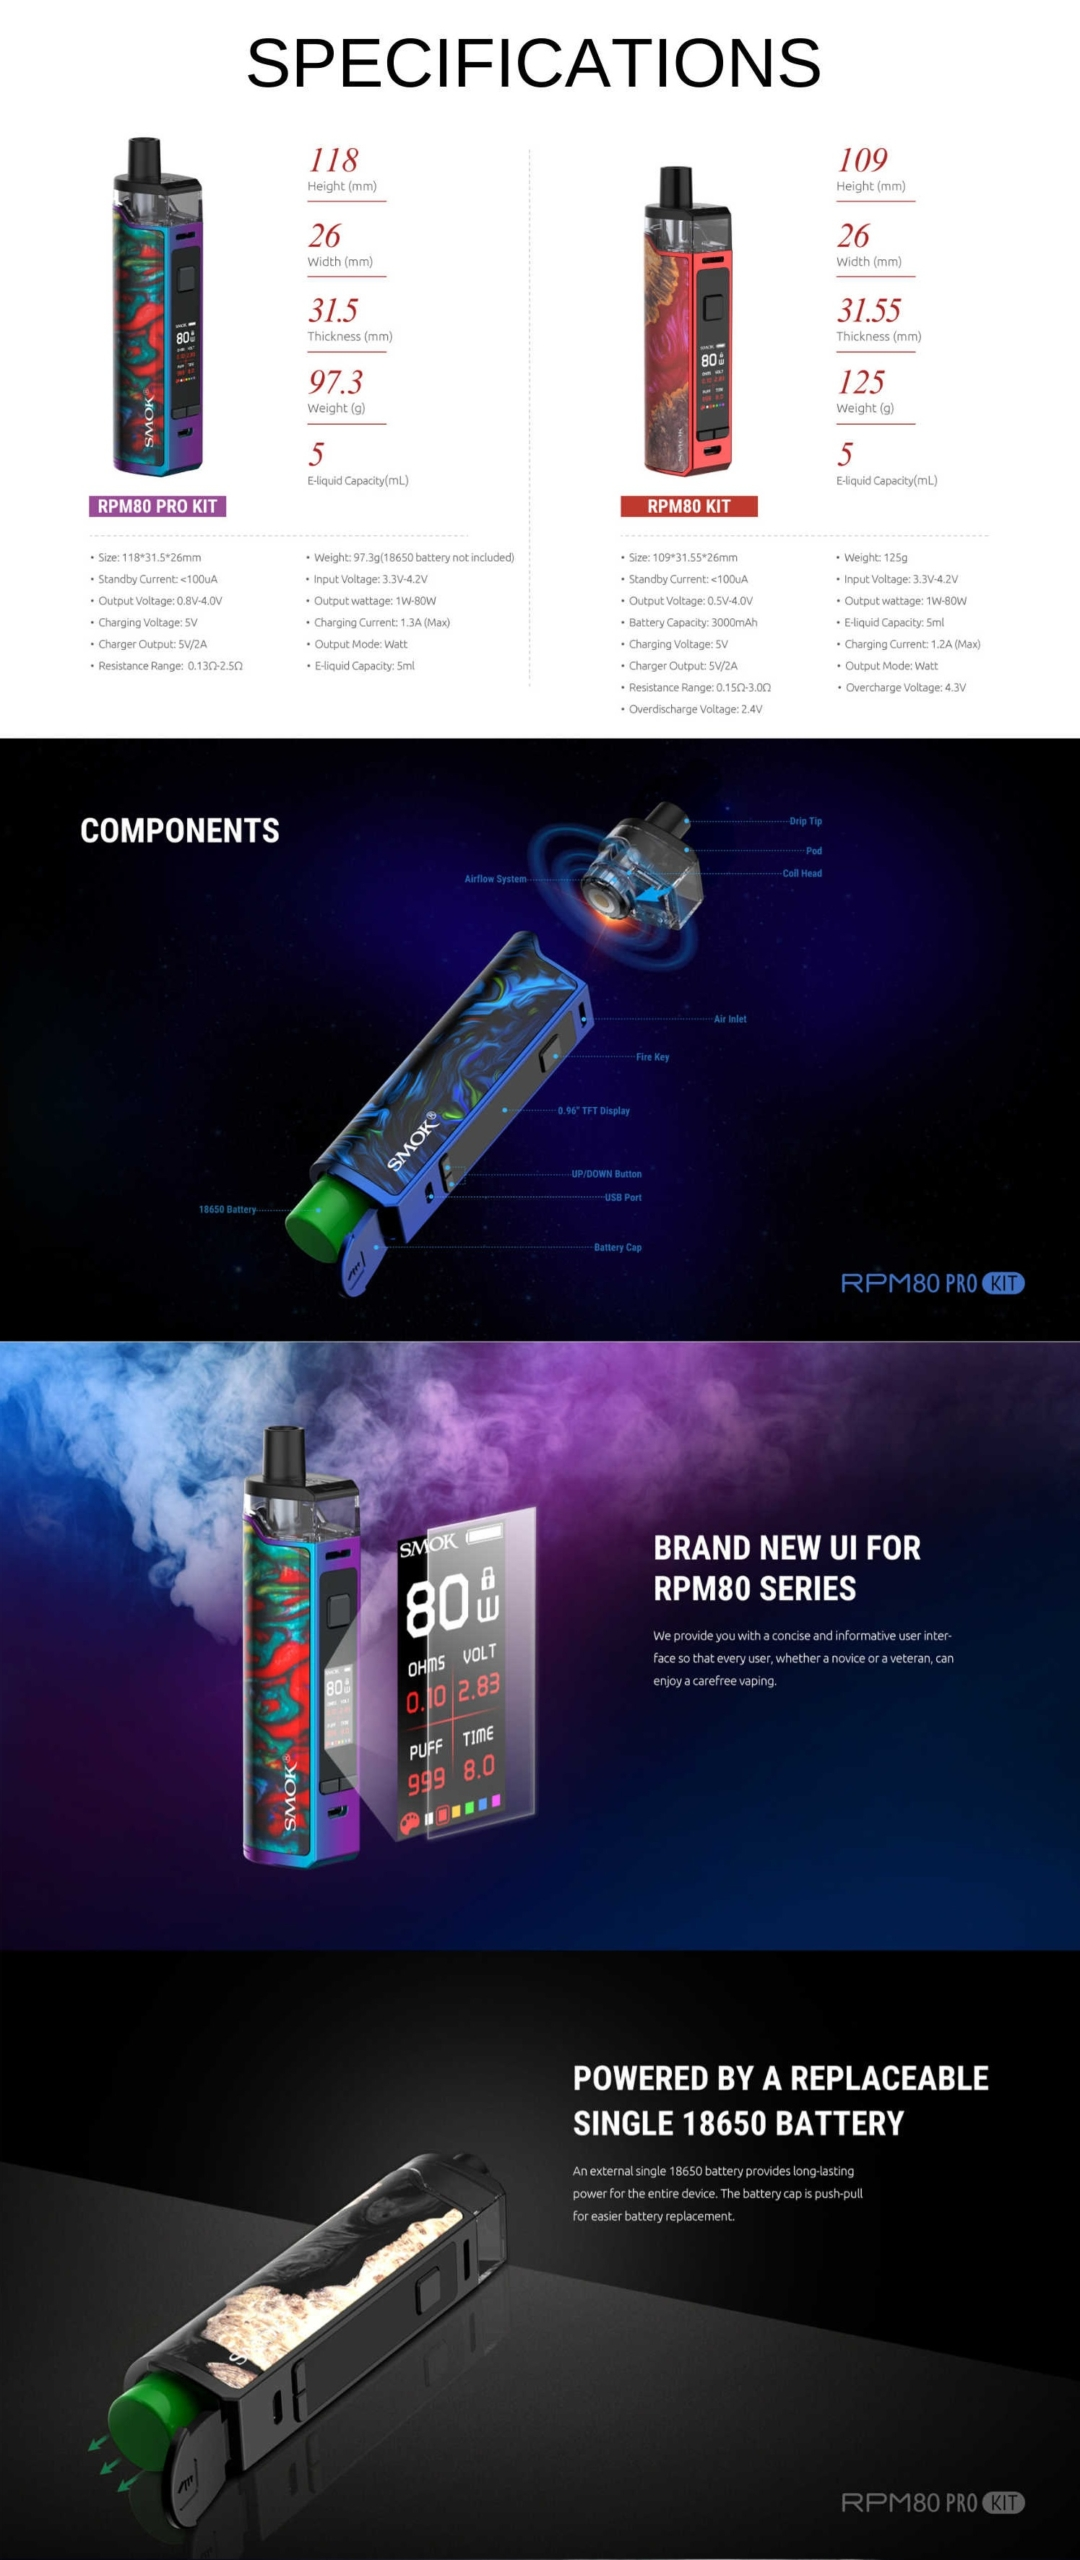 SMOK RPM80 Kit Built-in 3000mAh description